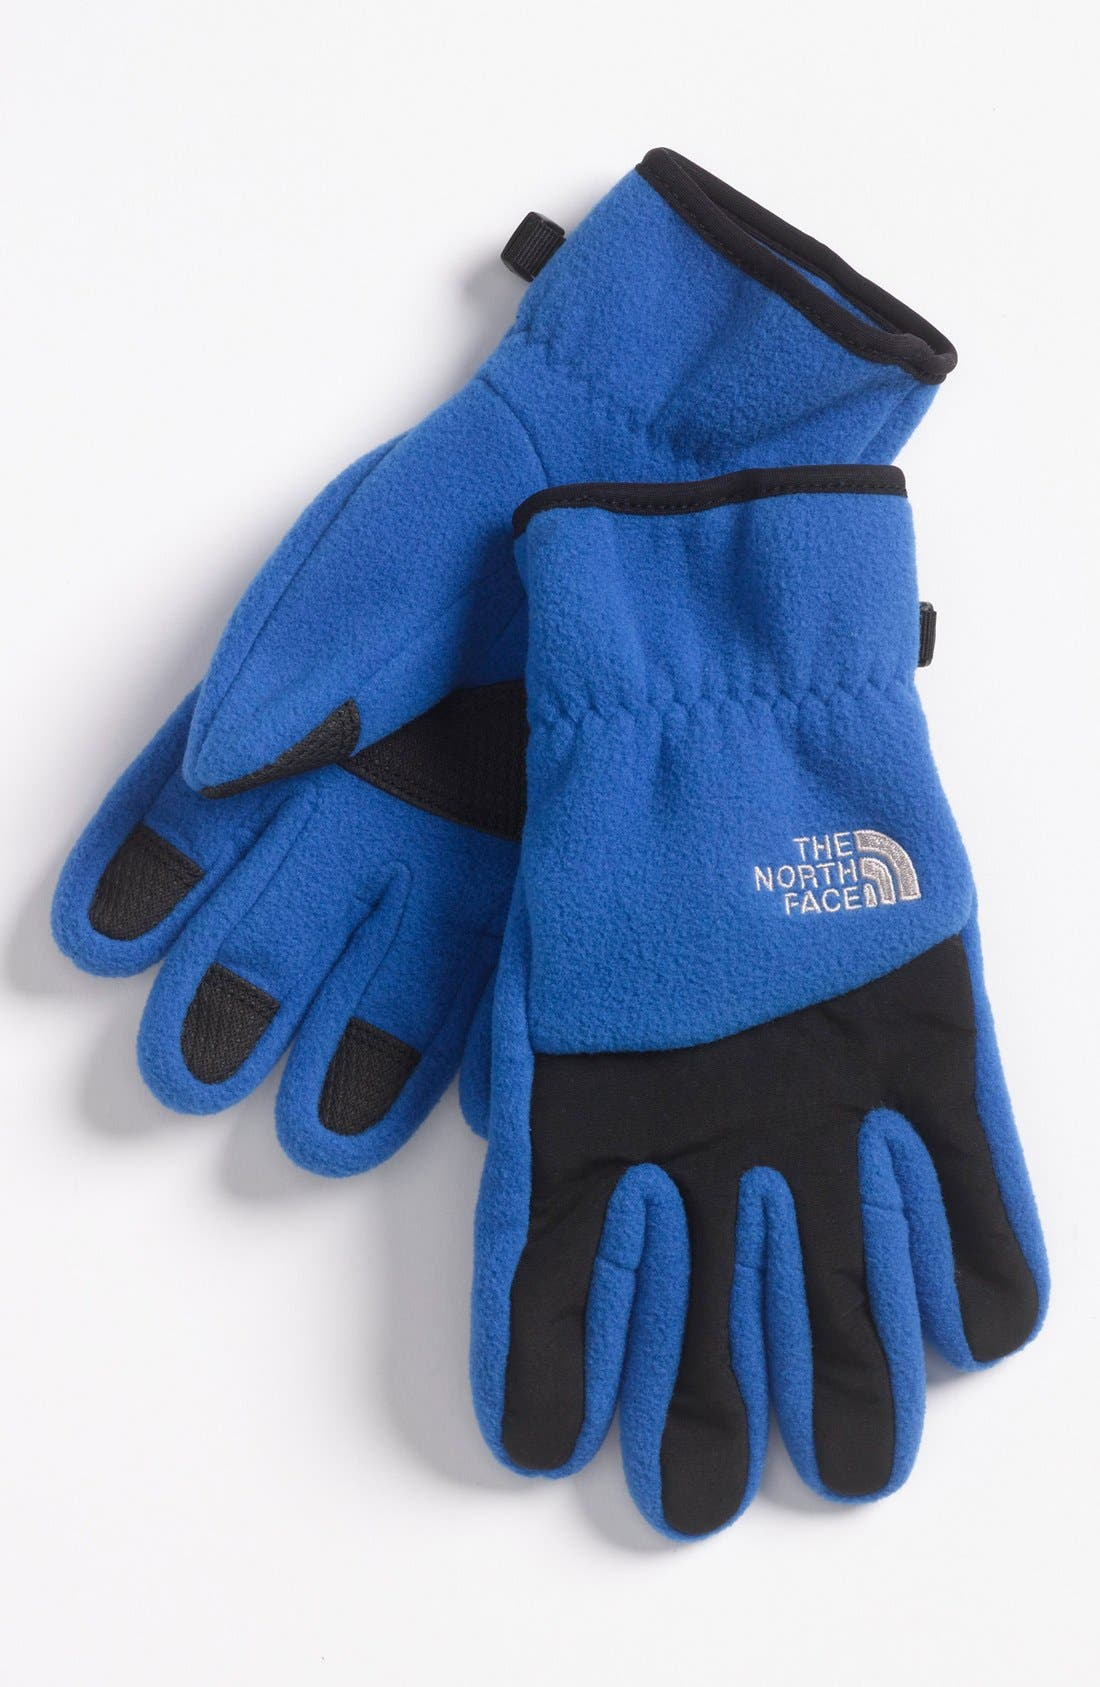 Alternate Image 1 Selected - The North Face 'Denali' Gloves (Boys)